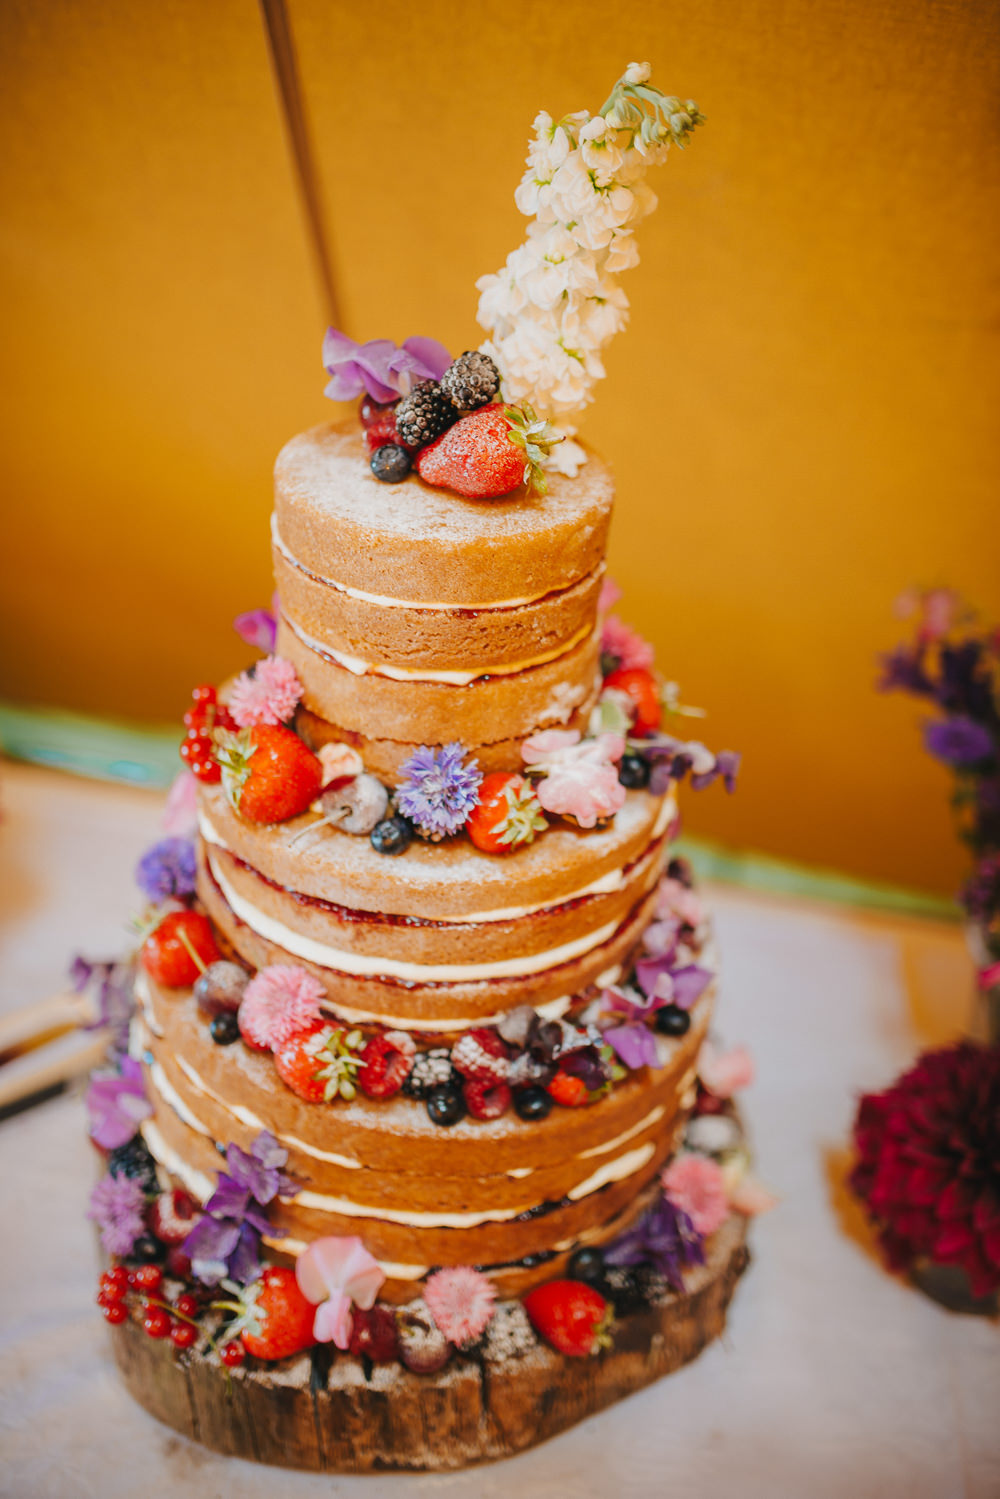 Naked Cake Fruit Flowers Wood Slice Kittisford Barton Wedding Joab Smith Photography